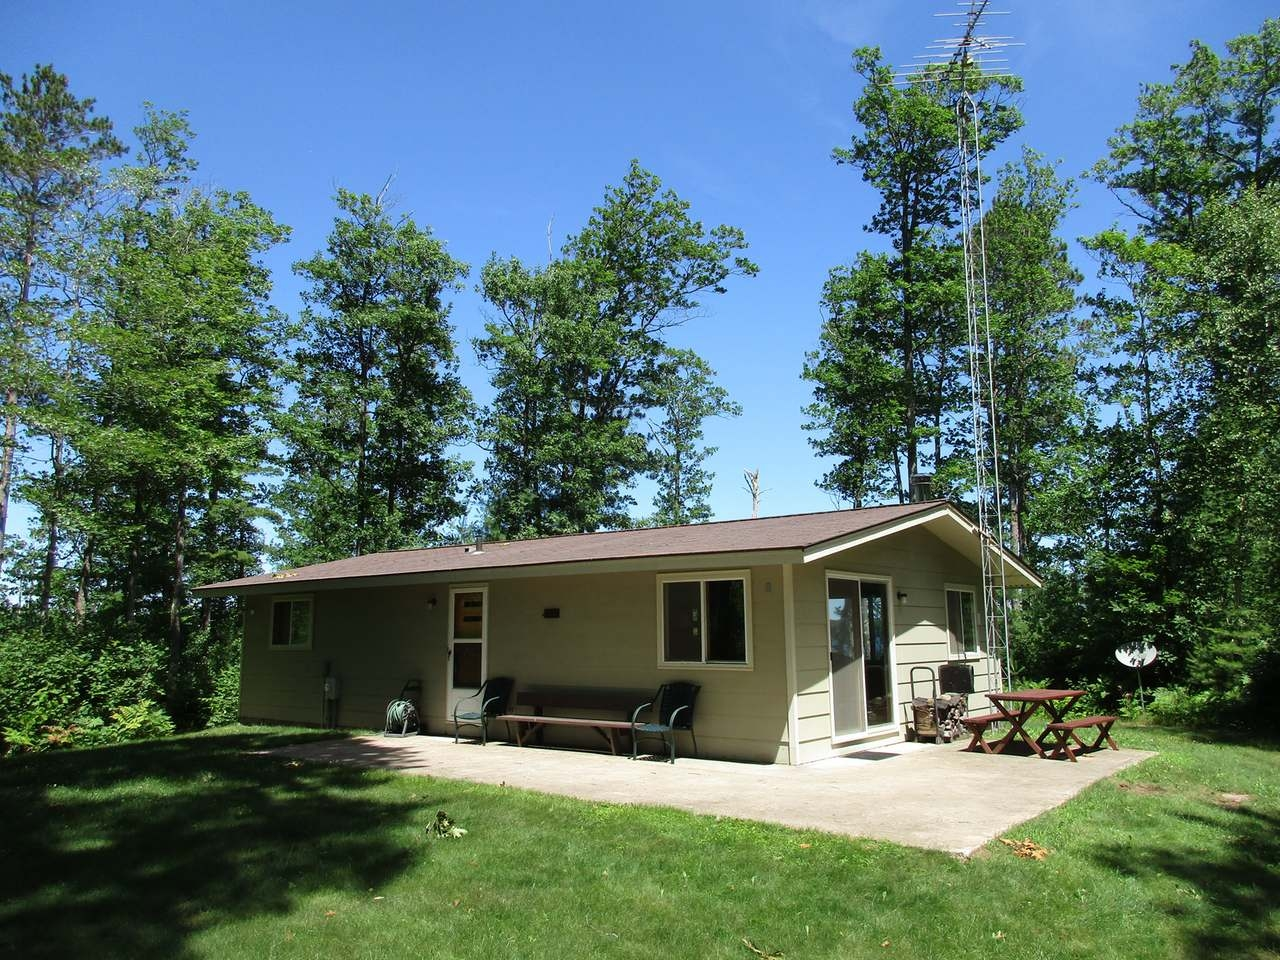 Rare Offering on Clear Lake of the Manitowish Chain of Lakes. End of the road privacy is found at this 2BR, 1BA home with 2+ car detached garage. This property offers 326 +/- feet of perfect frontage as well as 2.95+/- acres of well wooded Northern Wisconsin Solitude. Home comes furnished as shown. The location of the improvements on this parcel allow for expansion or the construction of a larger residence - there is a gorgeous building site located adjacent to the home. New survey (2018) clearly shows all lines and corners. New conventional septic (2015). The property adjoins 1,000's of acres of the Northern Highland American Legion State forest which ensures the current secludedness will last a lifetime. Whether you're looking for a buildable lot, or property with a solid home on the best lake of the Manitowish Chain, you've just found both!